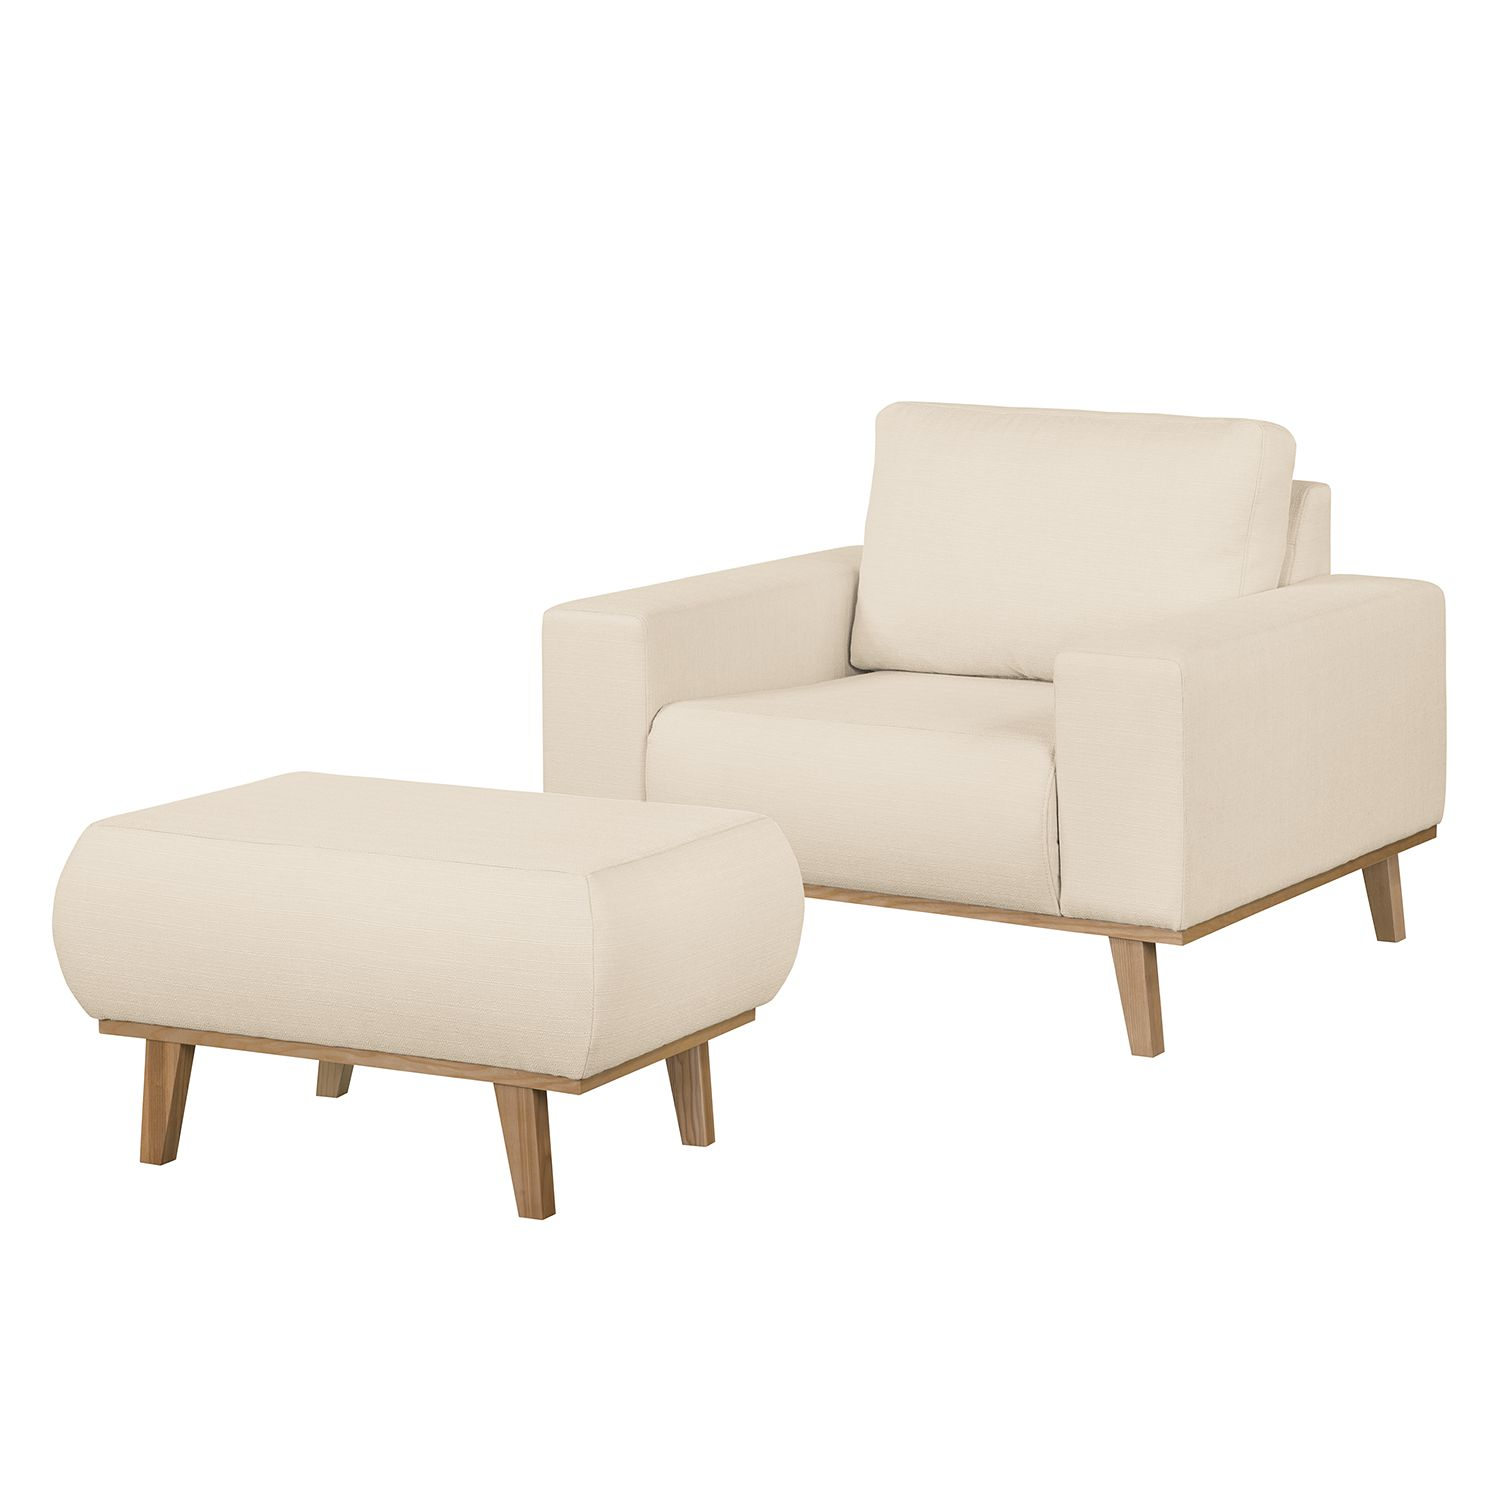 Sessel Eva II - Webstoff - Mit Hocker - Eiche Natur - Creme, kollected by Johanna